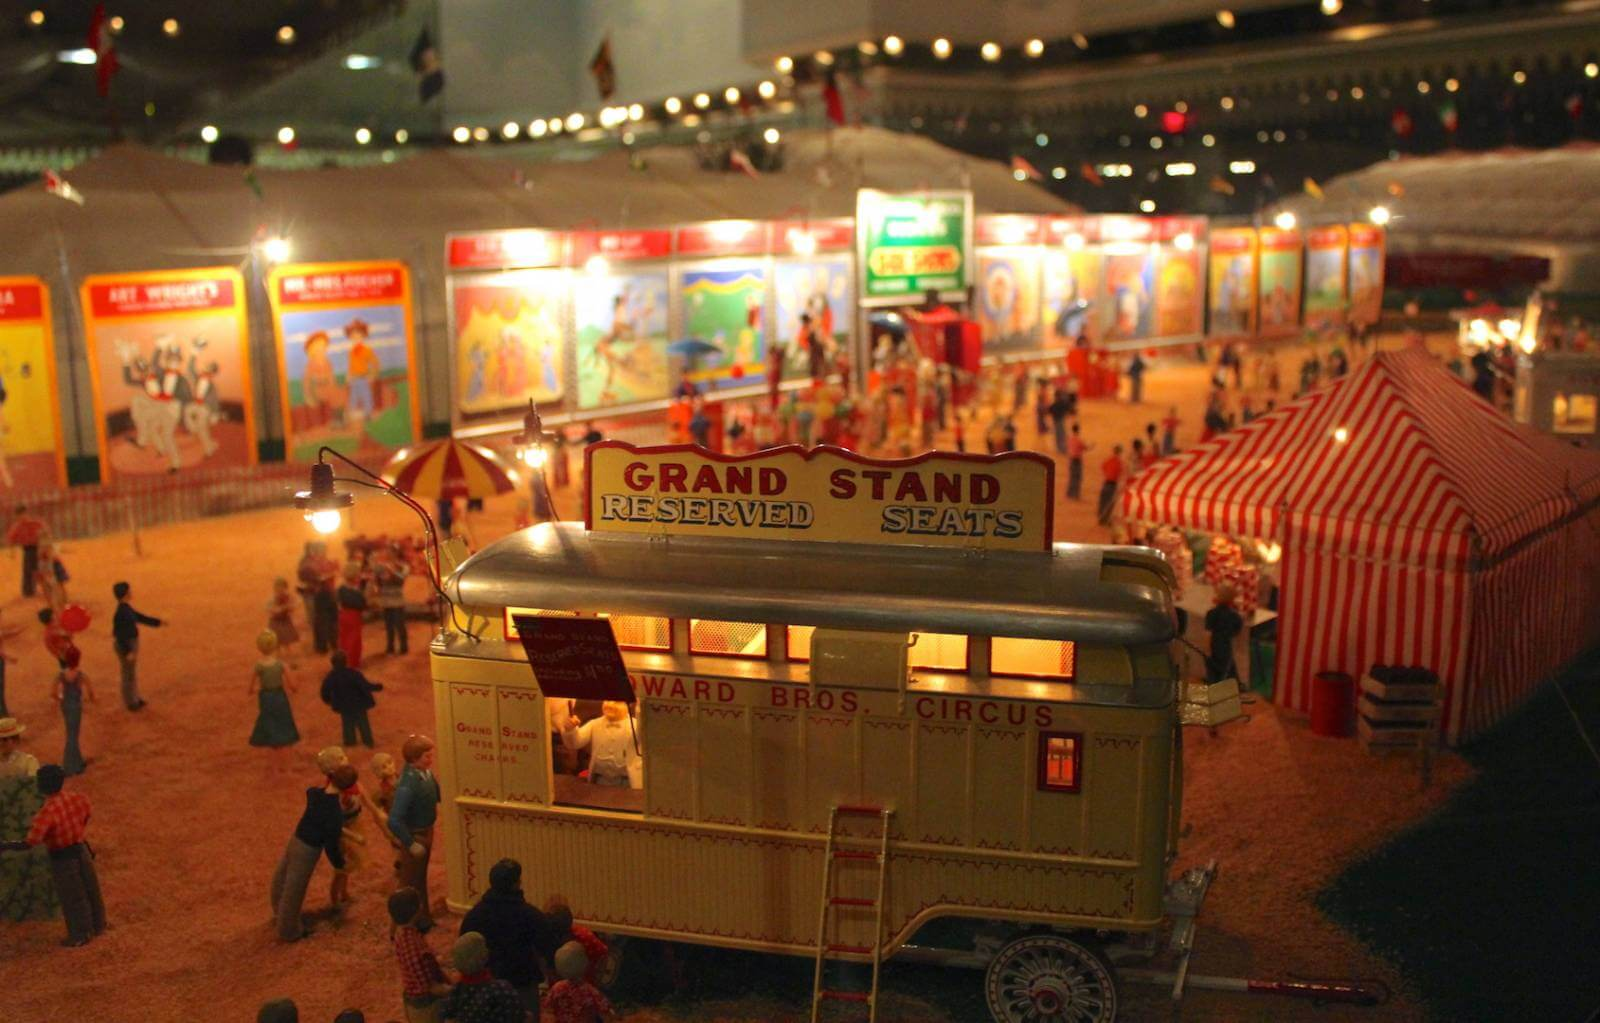 Circus lovers should check-out the Ringling Circus Museum with the world's largest miniature circus display including over 44,000 pieces. Photo by Nita Ettinger. Must Do Visitor Guides, MustDo.com.